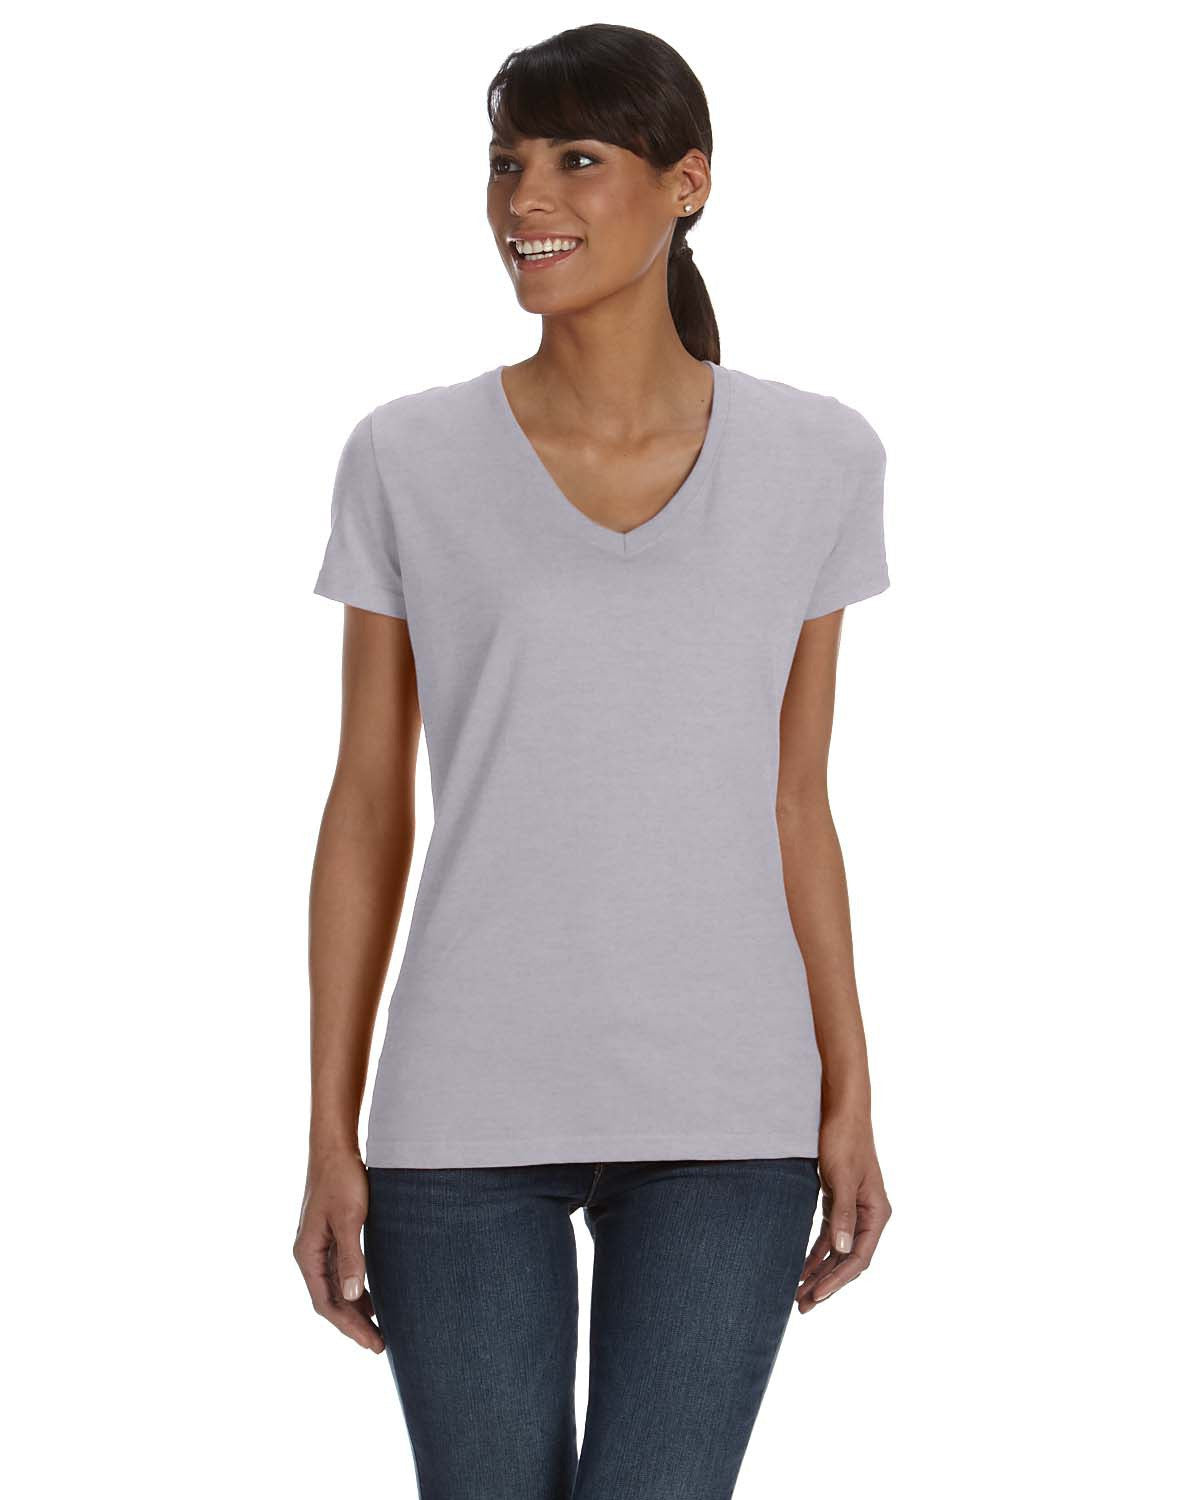 Fruit of the Loom Ladies HD Cotton V-neck T-shirt